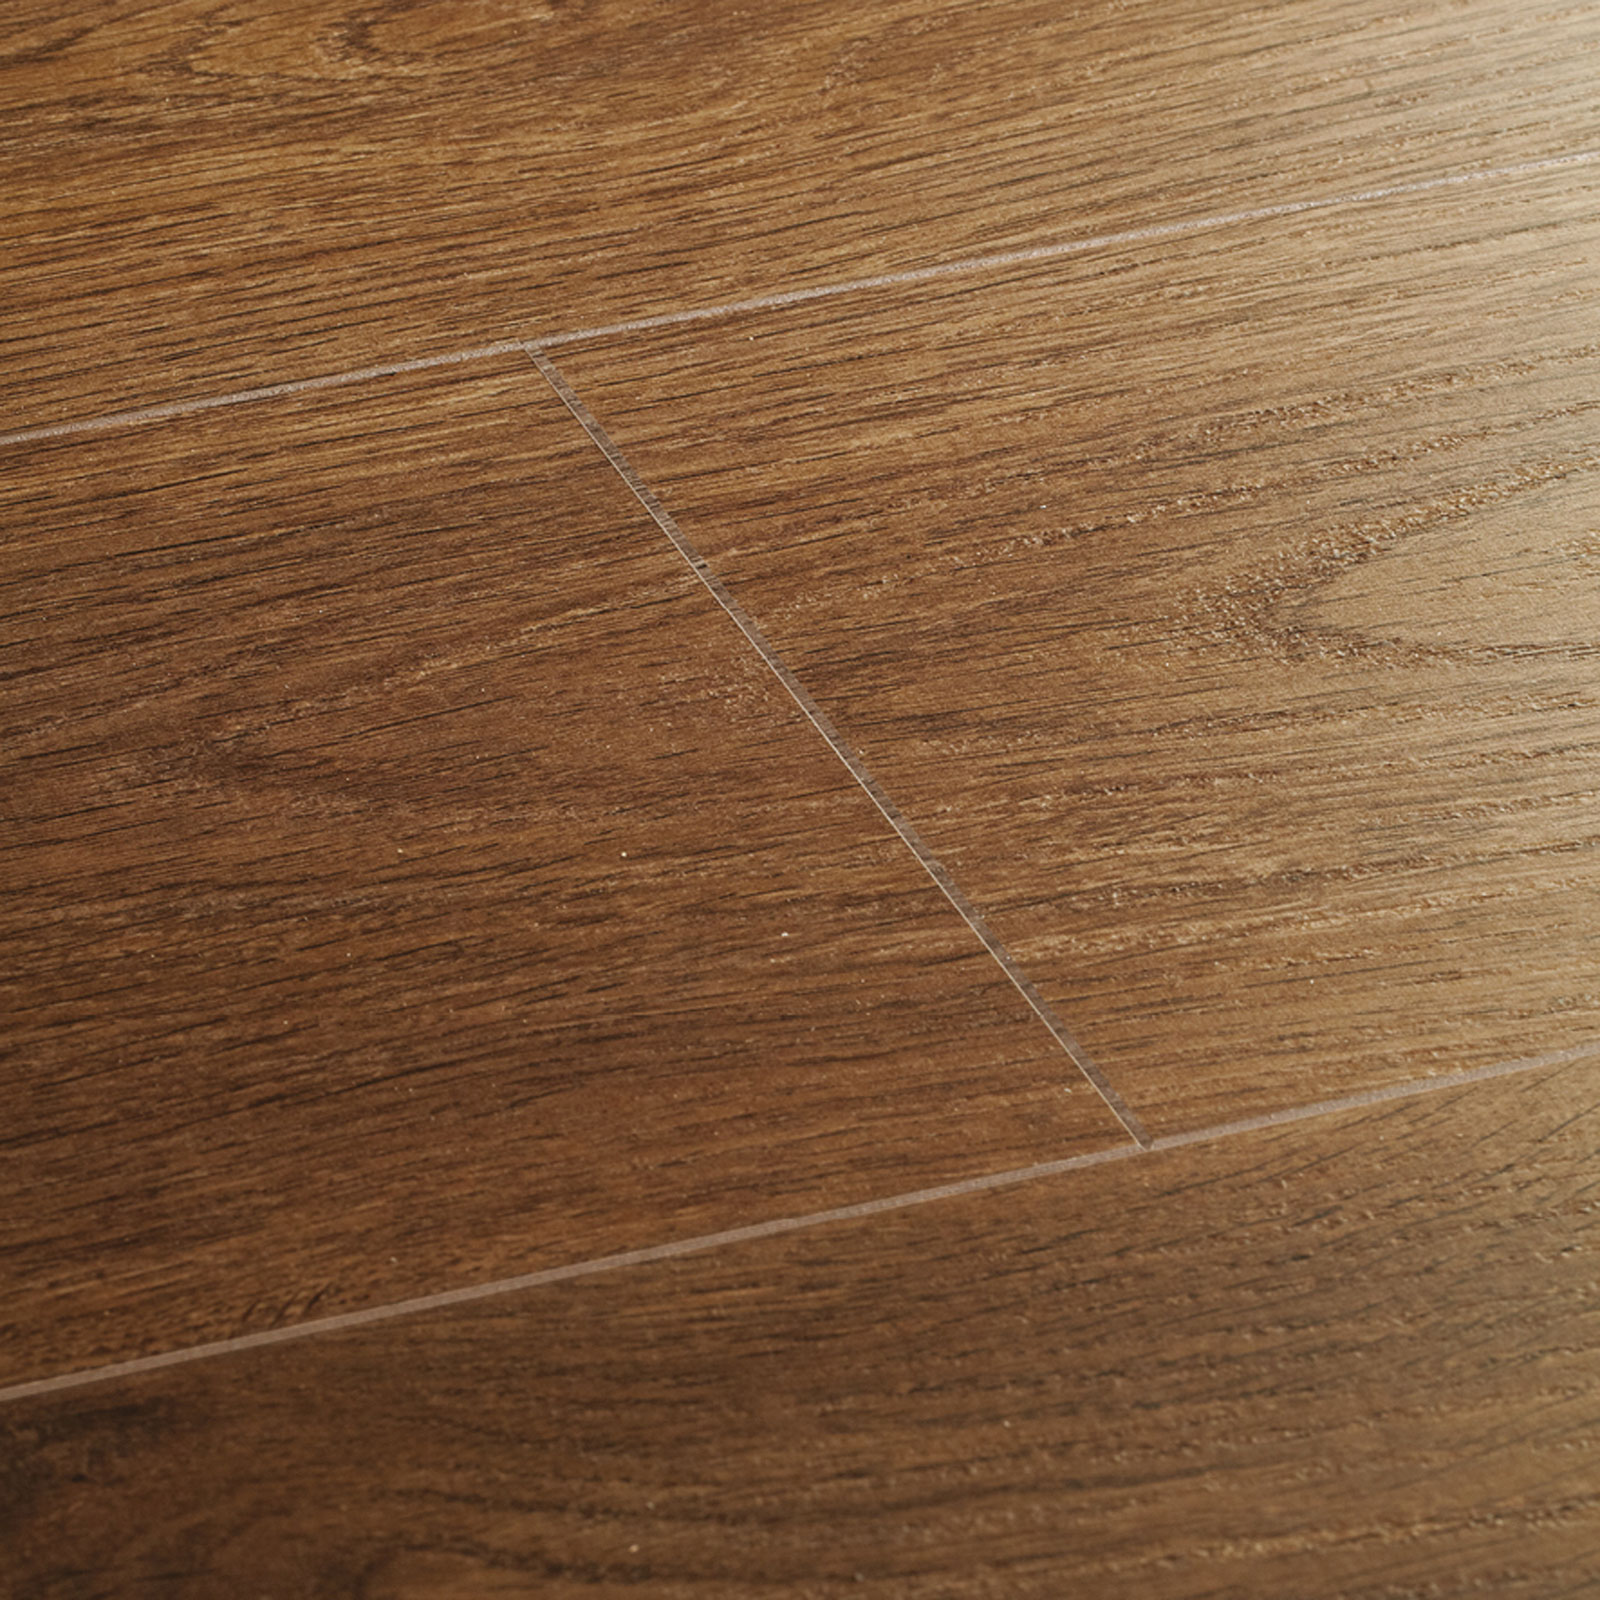 Coconut Timber Flooring Coconut Wood Durapalm Plyboo